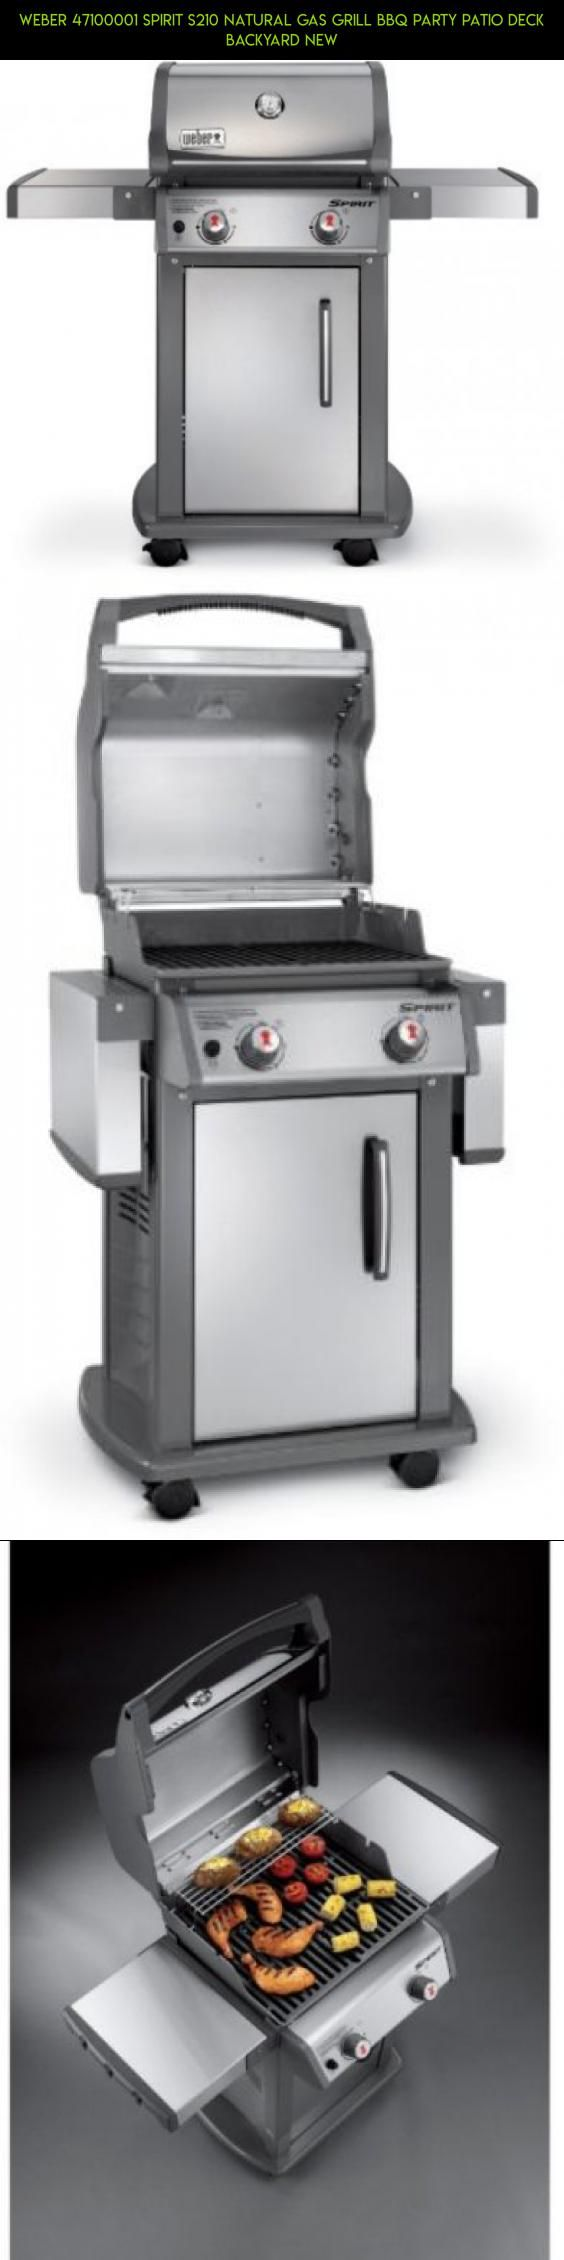 weber 47100001 spirit s210 natural gas grill bbq party patio deck